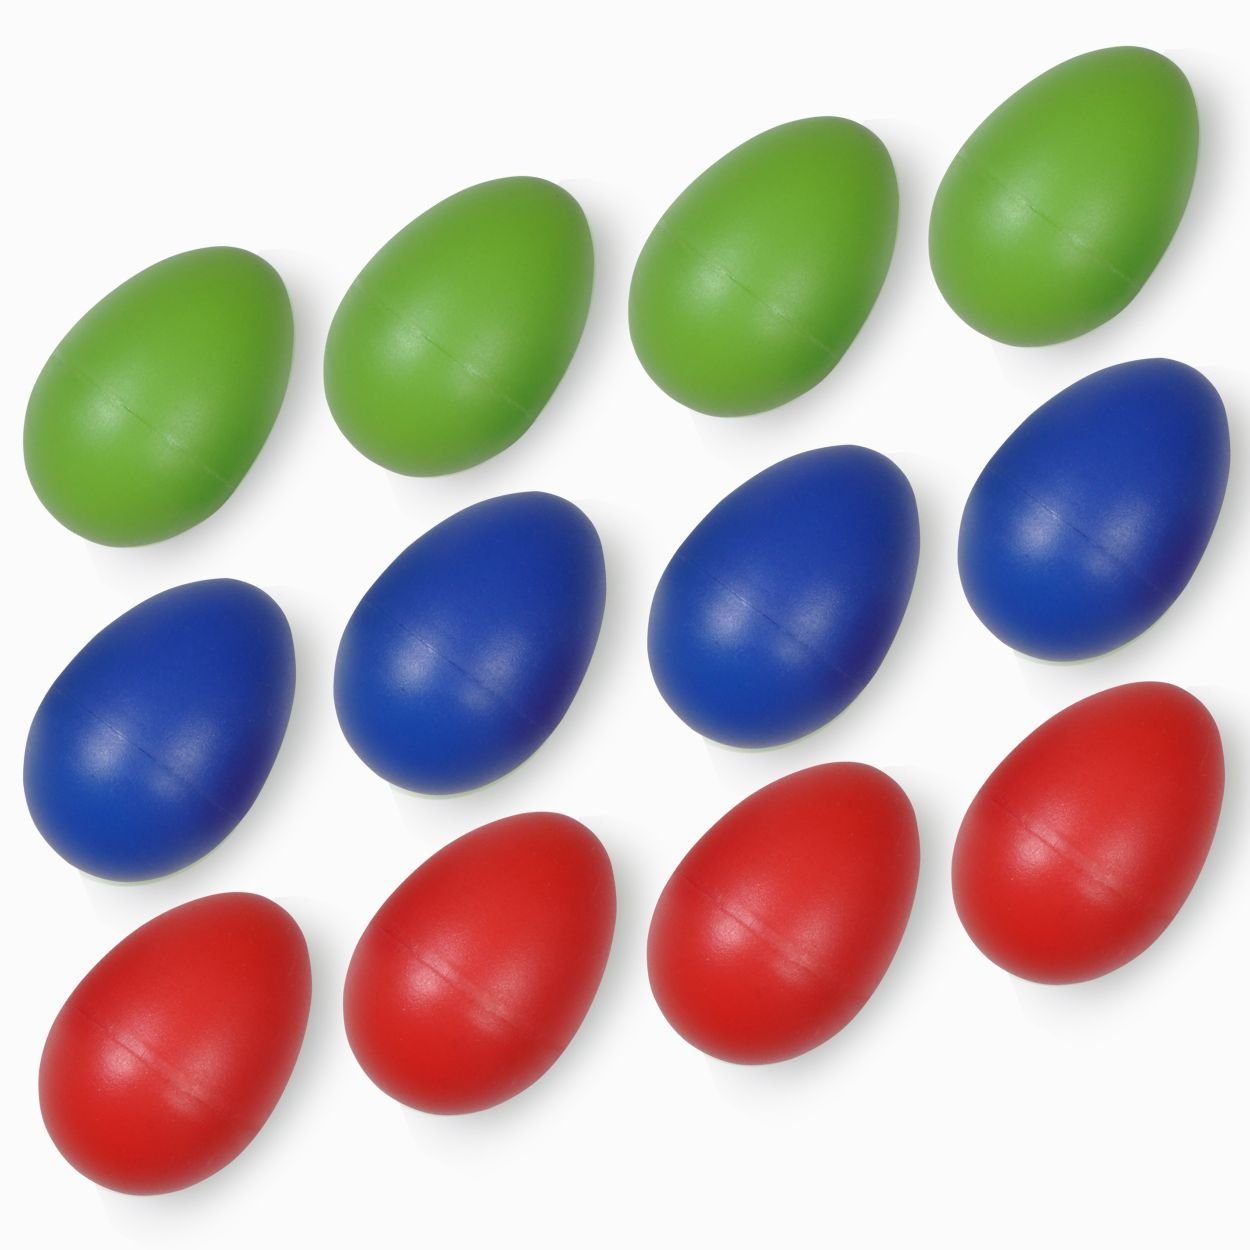 Egg Shakers NO LEAD PELLETS! KID-SAFE BEANS! (1 Dozen, 12 Pack) Durable ABS Plastic Musical Percussion Instrument – BPA-FREE Toy Shaker Rattle Maracas For Kids, Children, Toddlers, Babies, Infants